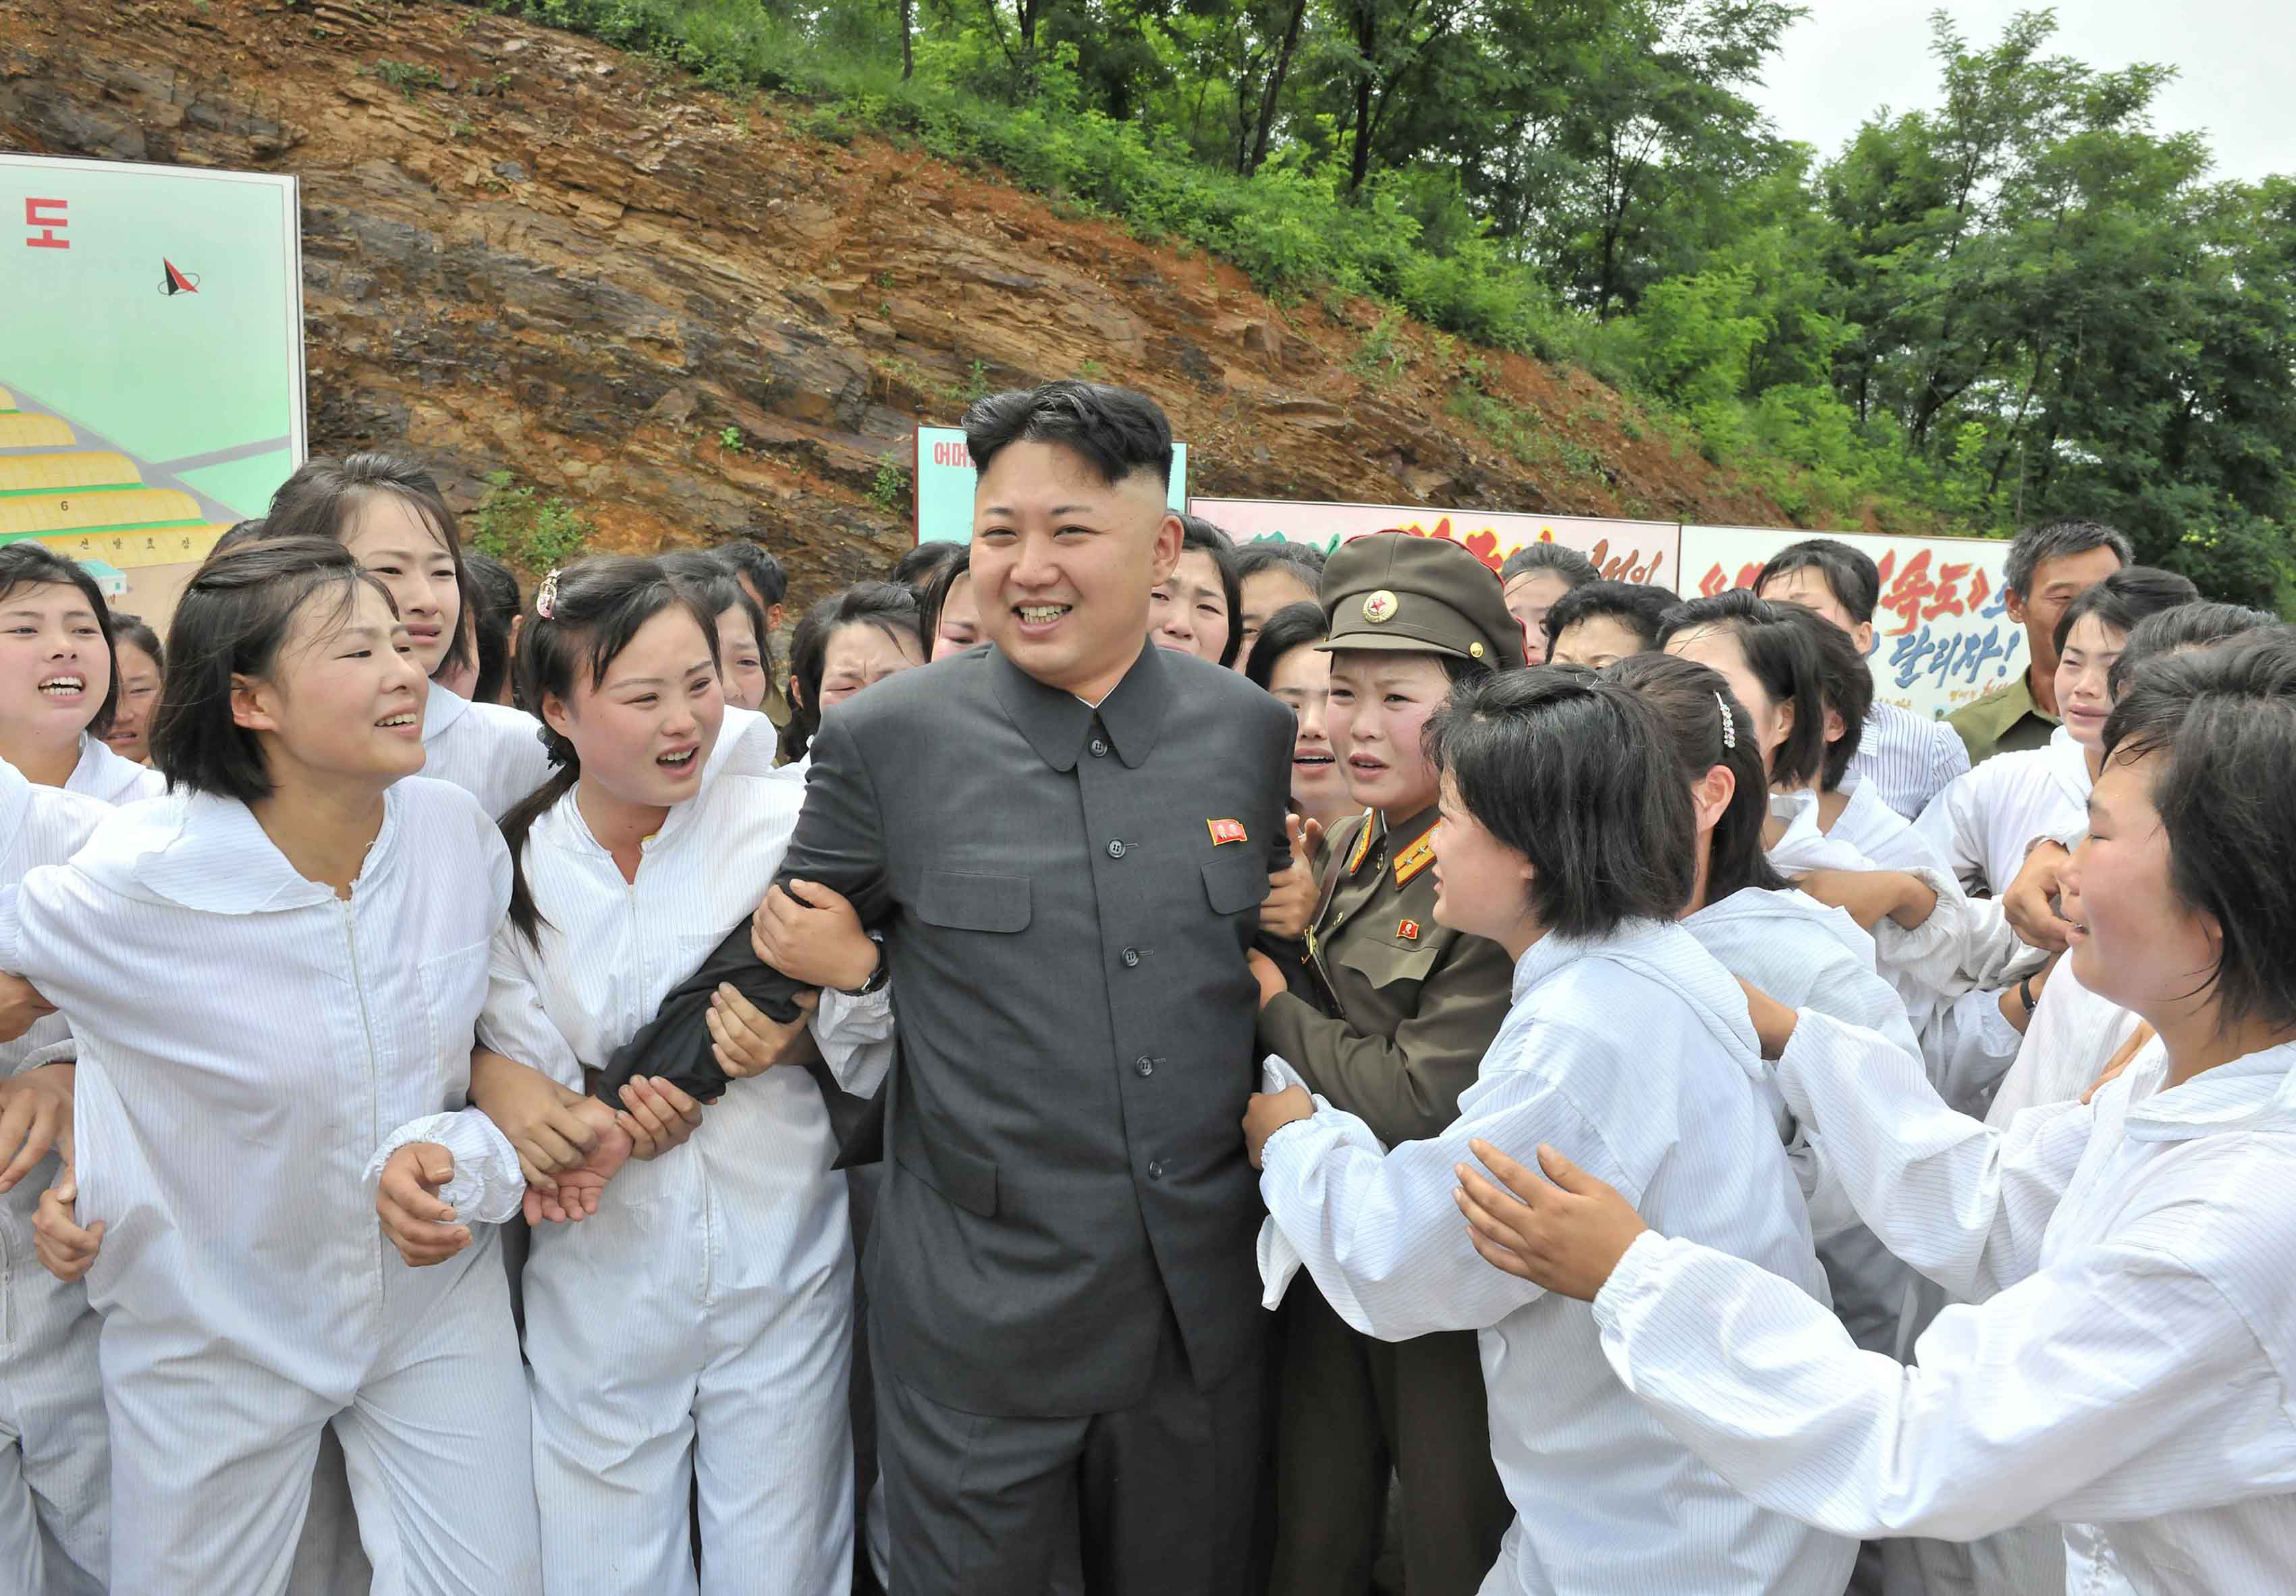 North Korean leader Kim Jong-un visits a Mushroom Farm in this undated photo released by North Korea's Korean Central News Agency (KCNA) in Pyongyang July 16, 2013.